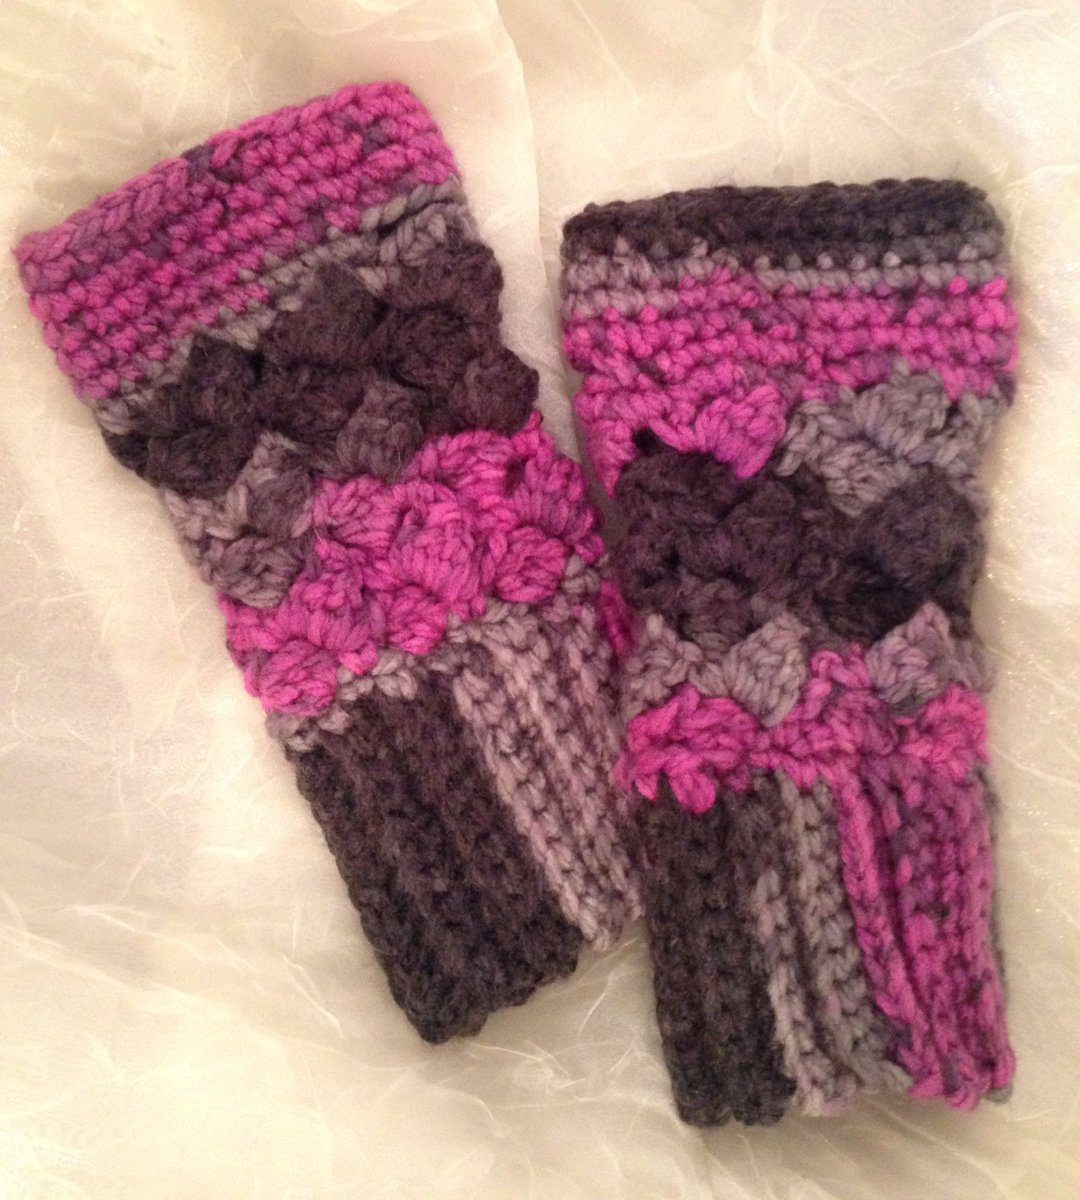 Fingerless gloves are a great gift!  https://www. etsy.com/listing/540974 598/fingerless-gloves-texting-gloves-crochet?ref=shop_home_feat_4# &nbsp; …  #etsychaching #crafturday #handmade #crochet #gloves #fallfashion #shopsmall <br>http://pic.twitter.com/busRstZvQF